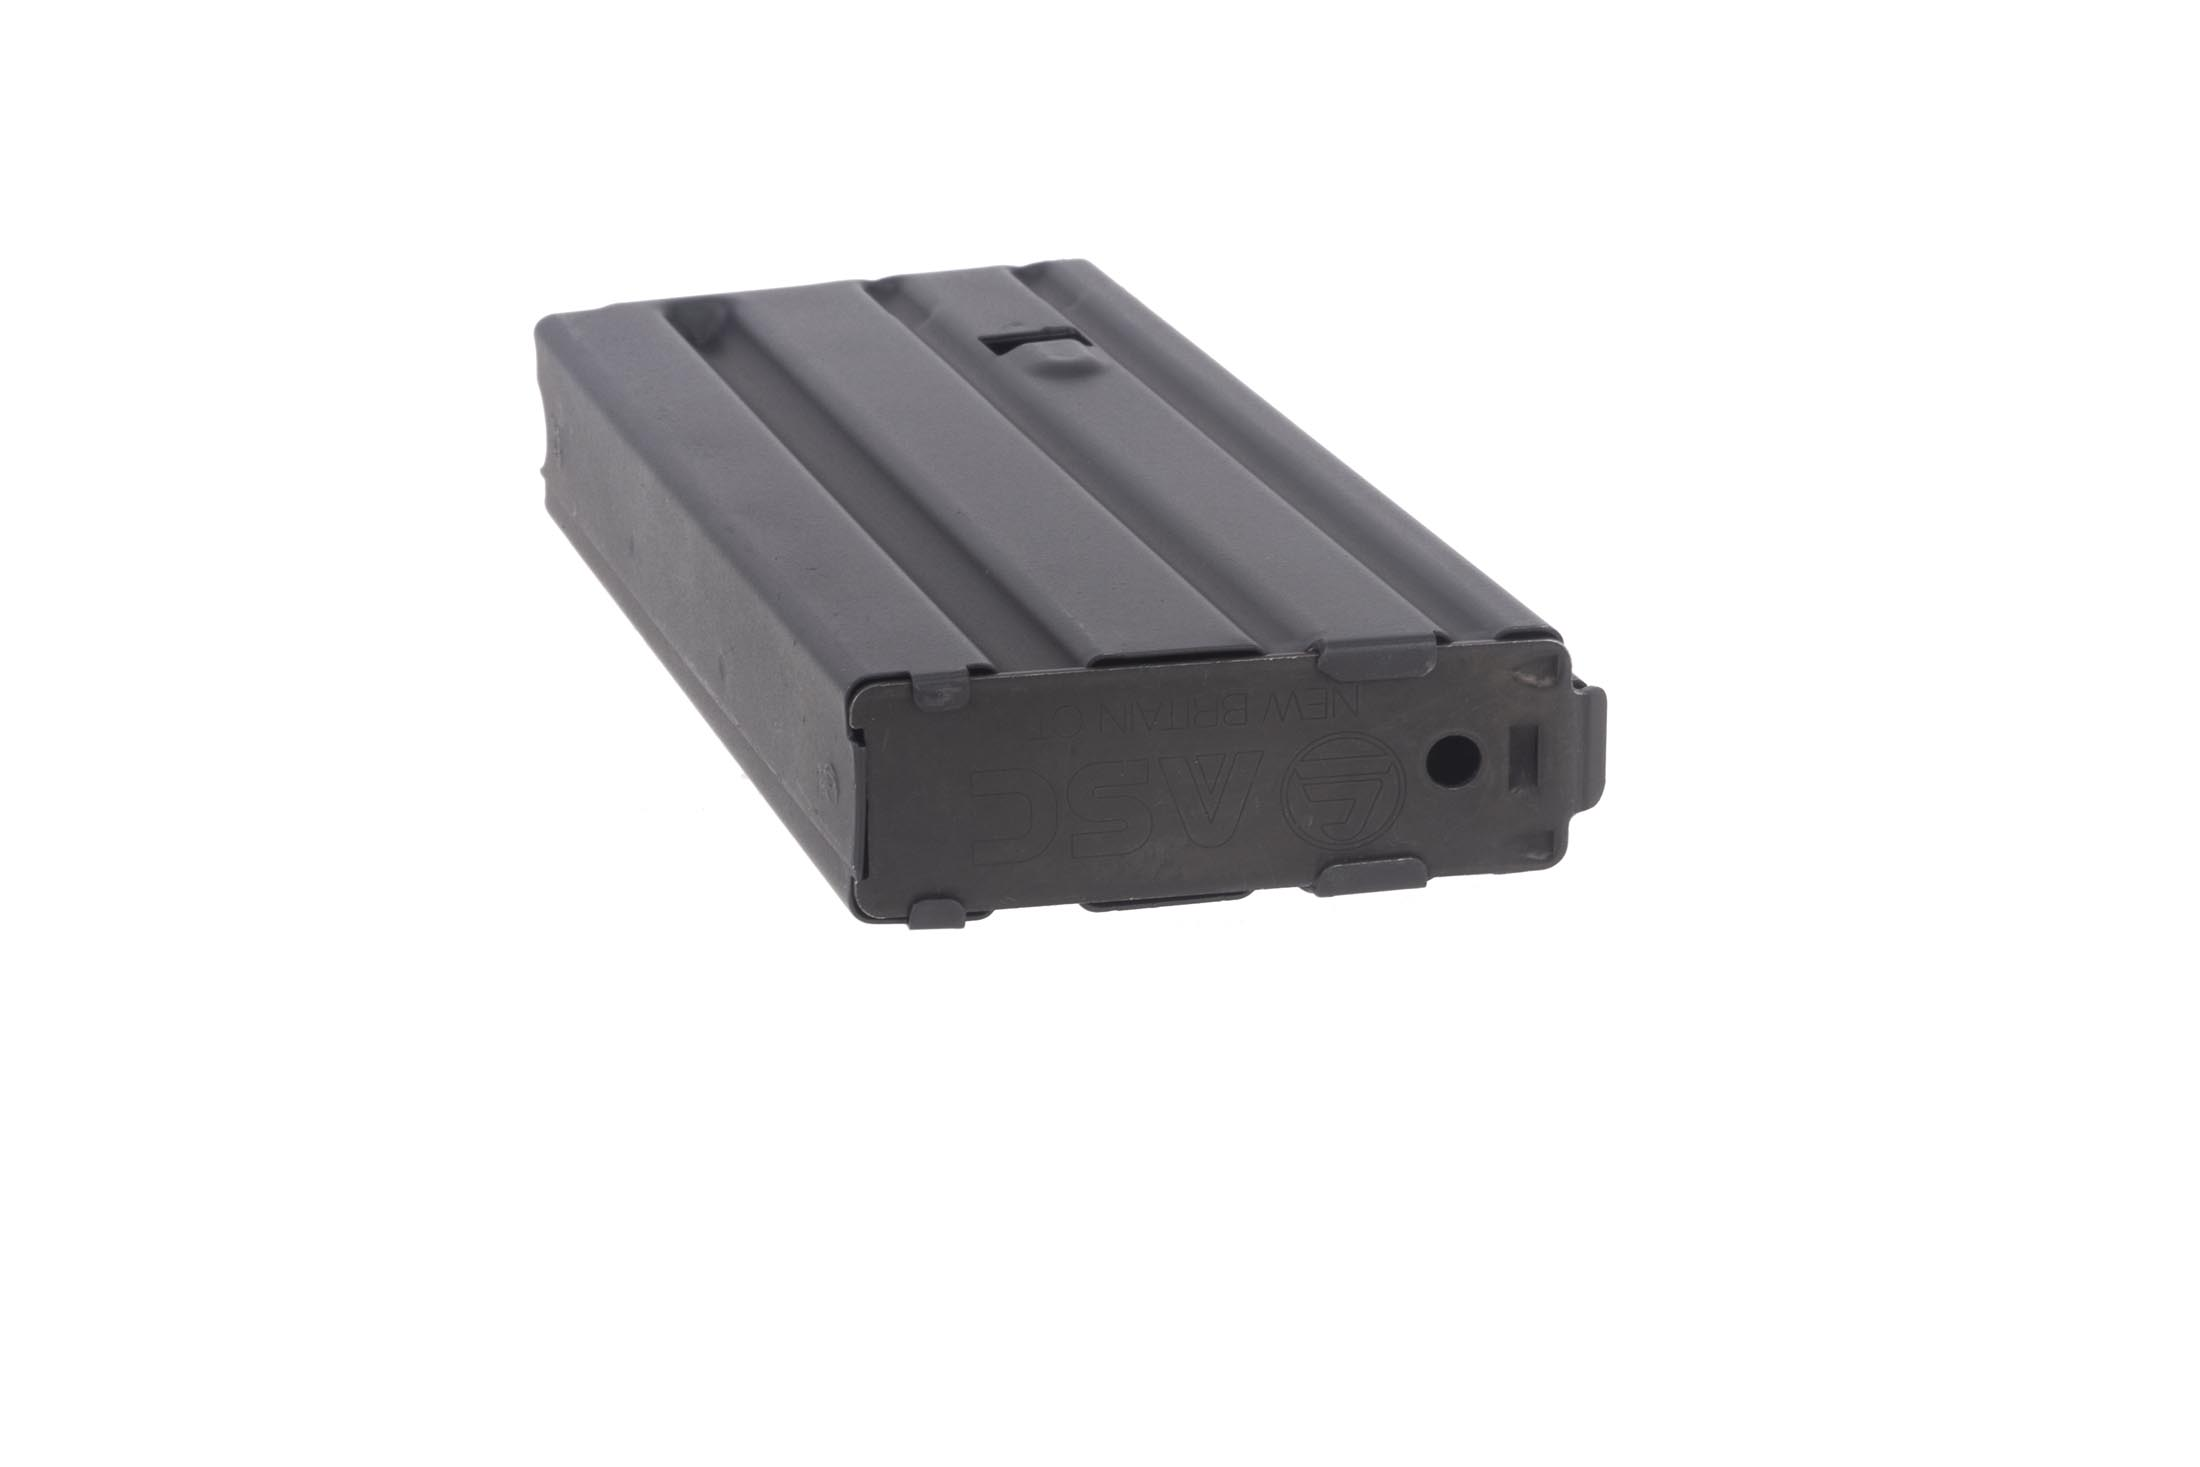 Radical Firearms 12-round aluminum magazine for .450 Bushmaster magazine is produced by Ammunition Storage Components.